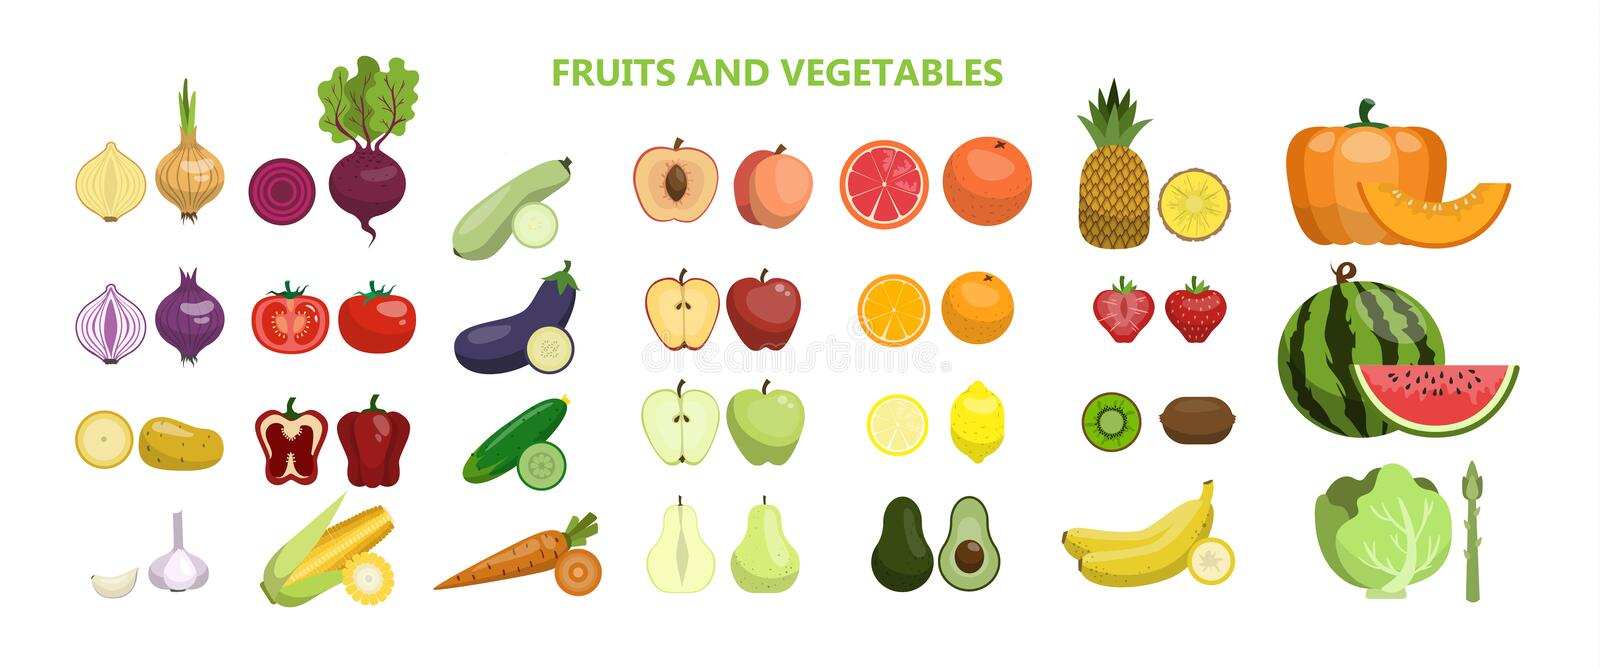 Fruits and vegetables. Fruits and vegetables set on white background royalty free illustration